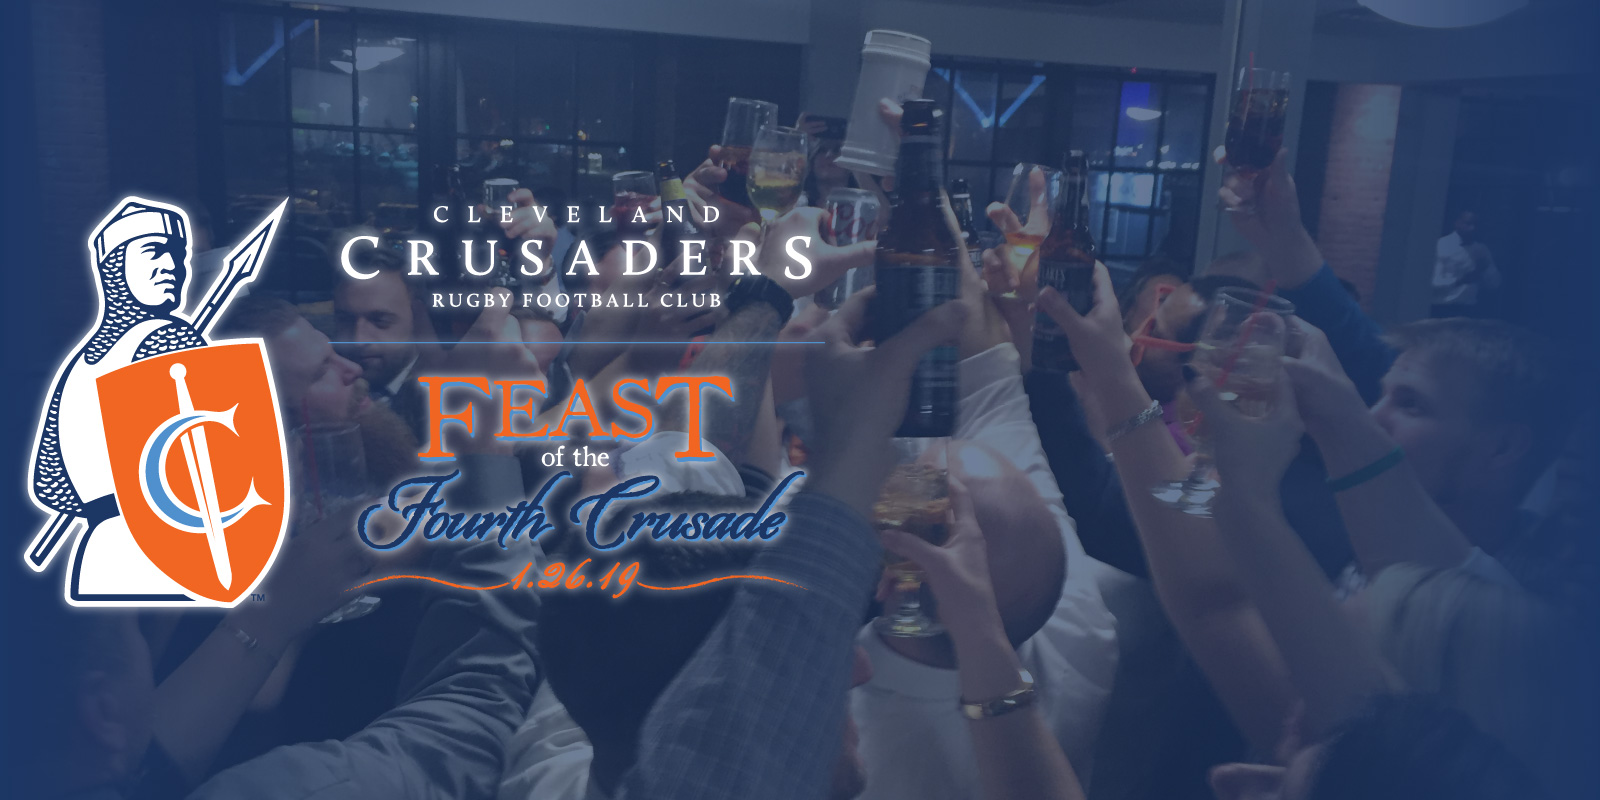 Feast of the Fourth Crusade and Awards Celebration!  Saturday, January 26th, 2019